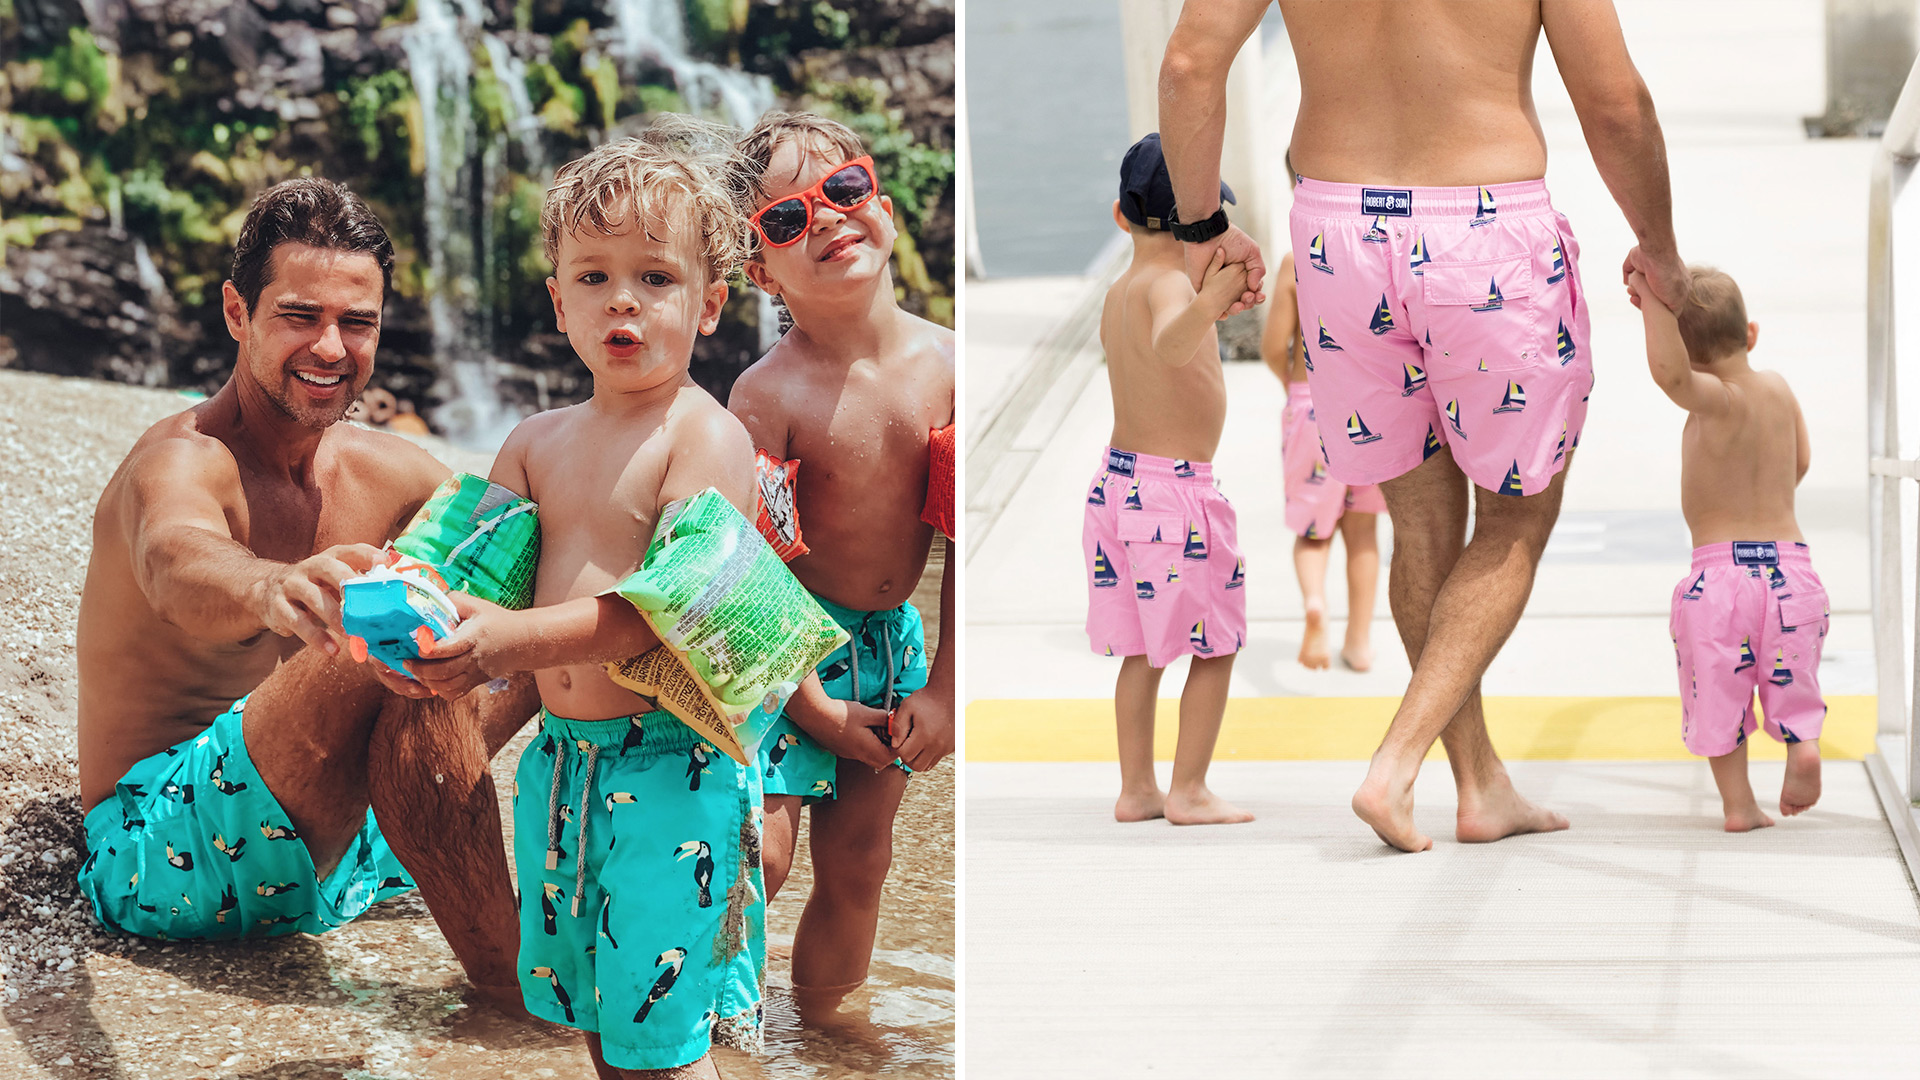 Win a gift voucher to spend on a range of swim shorts, Worth £200!